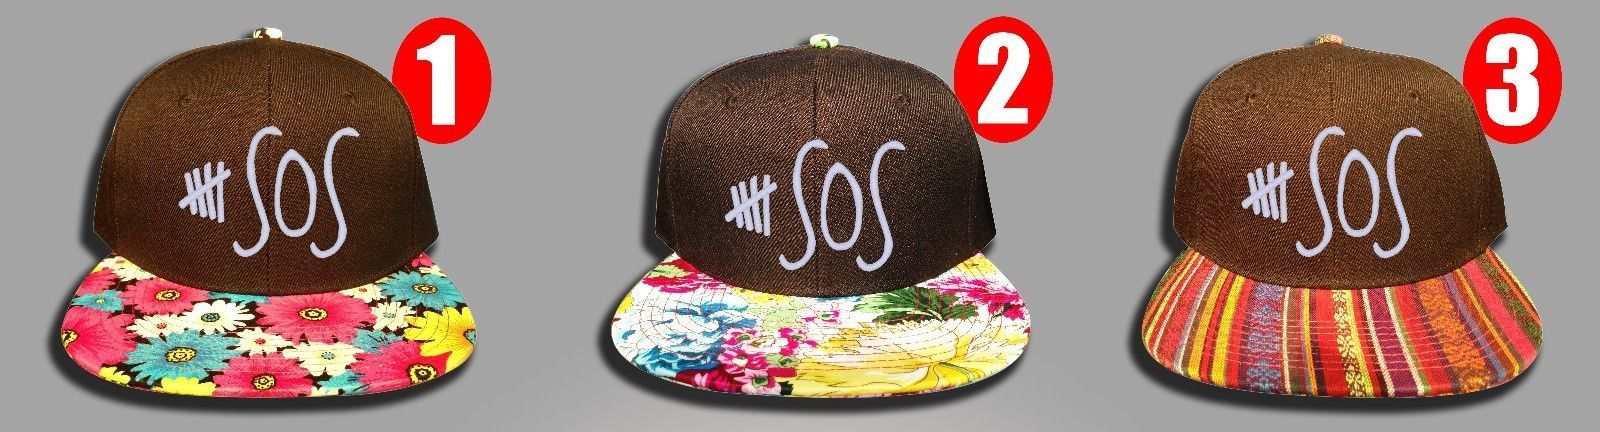 5 Seconds of Summer, FLoral Colors, Snapback Hat